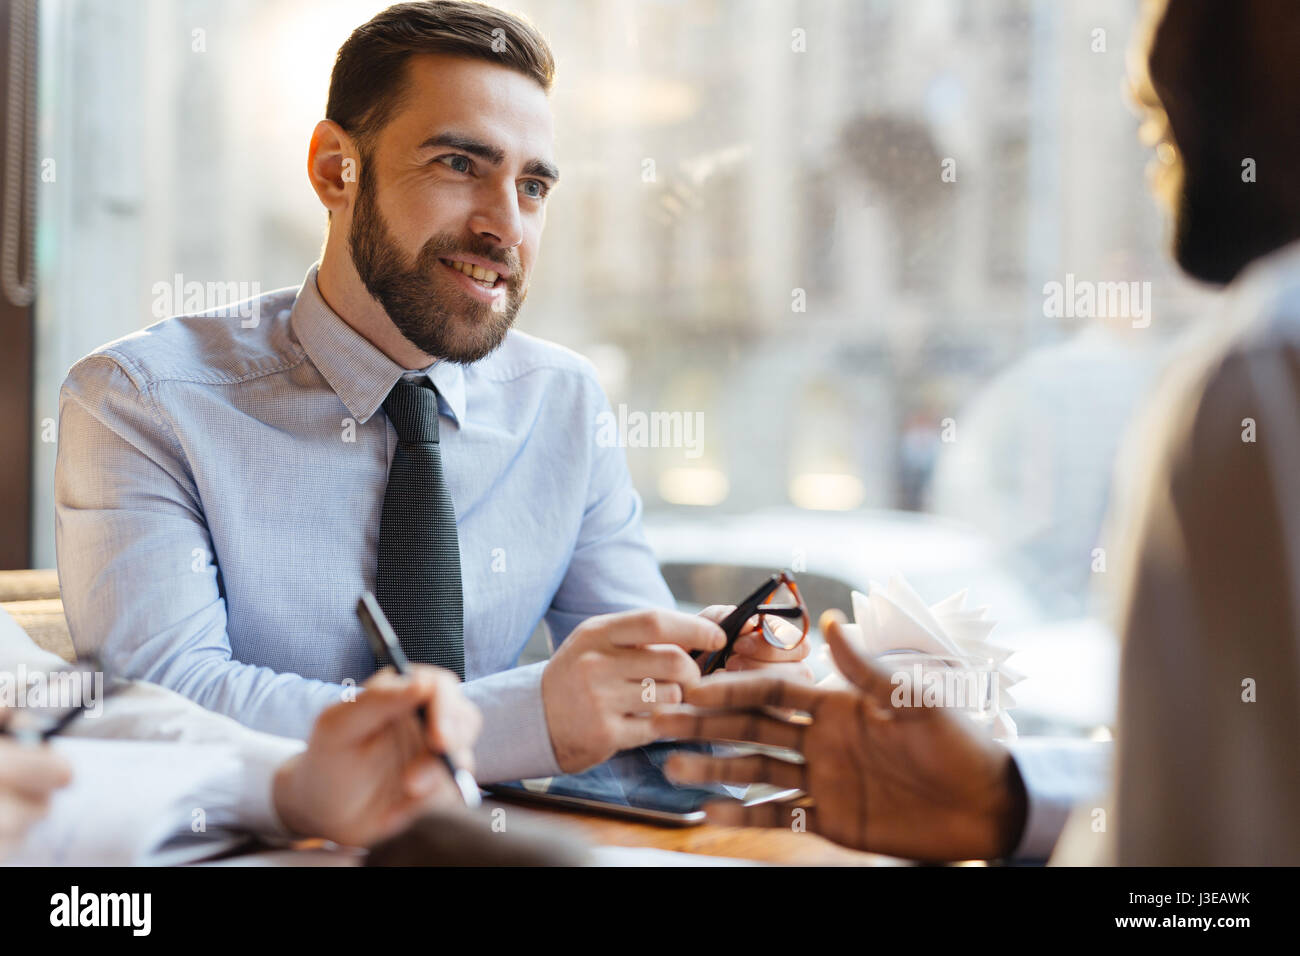 Employer at work - Stock Image